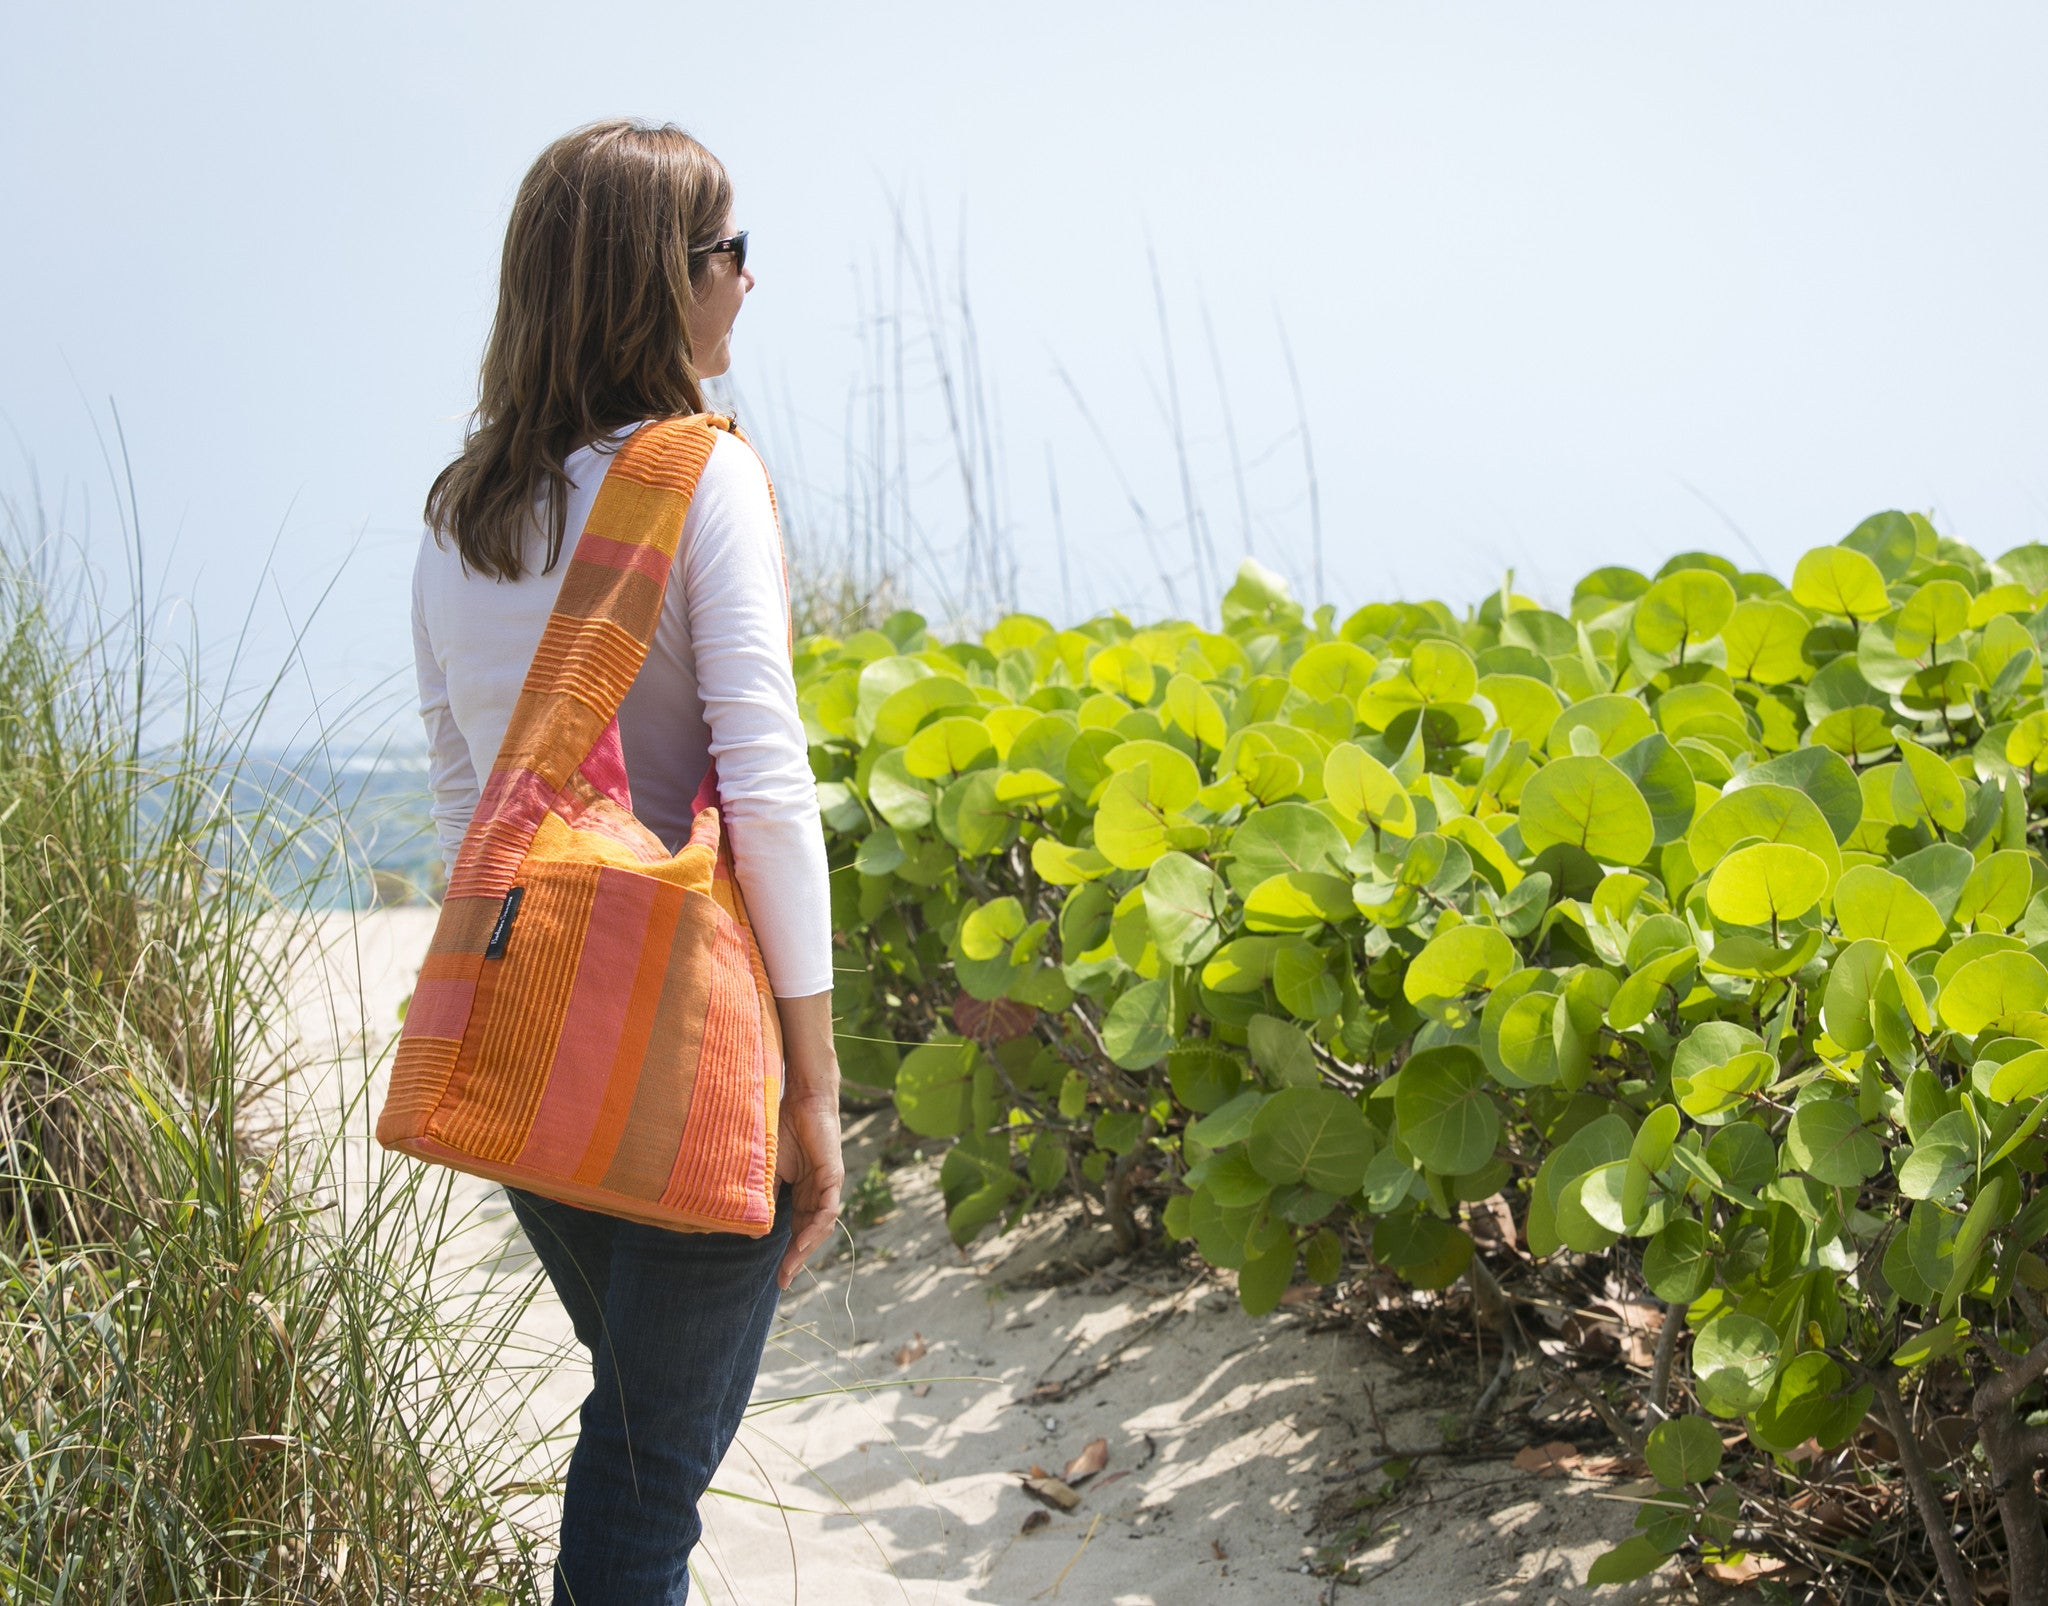 The Versatile Shoulder Bag - Great for a day at the beach! (sample fabric shown in large size)